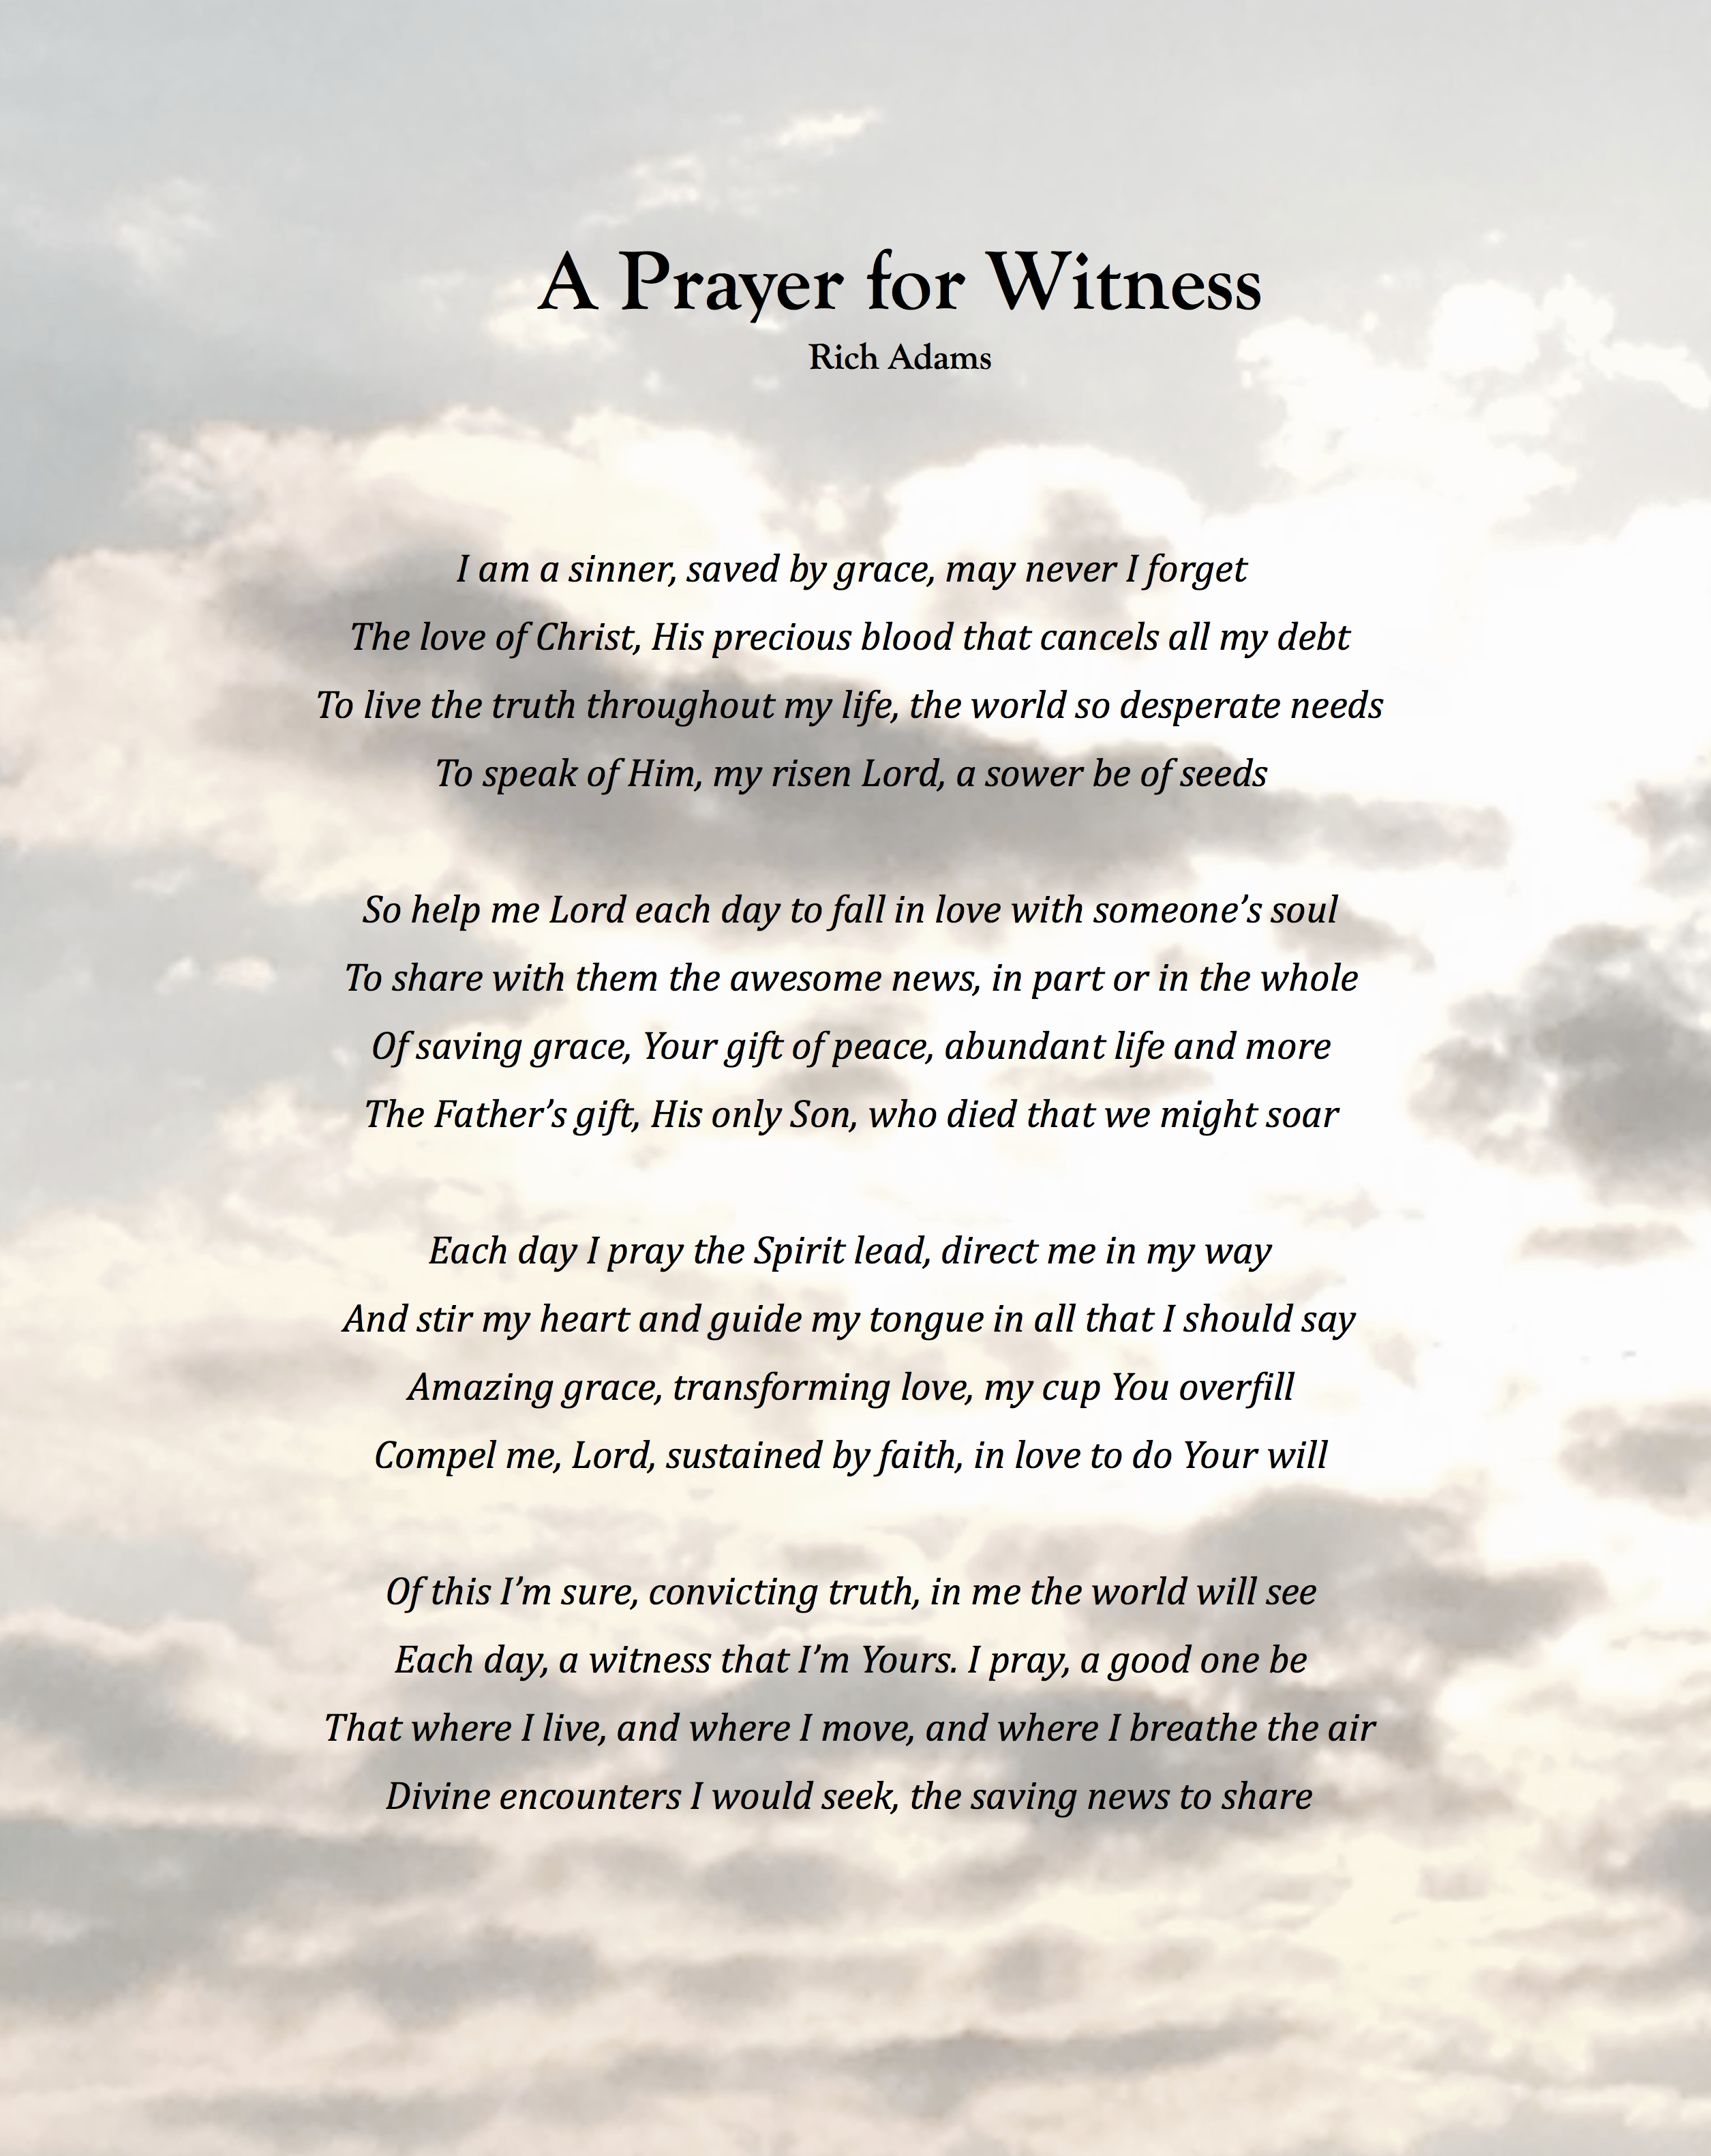 A Prayer for Witness